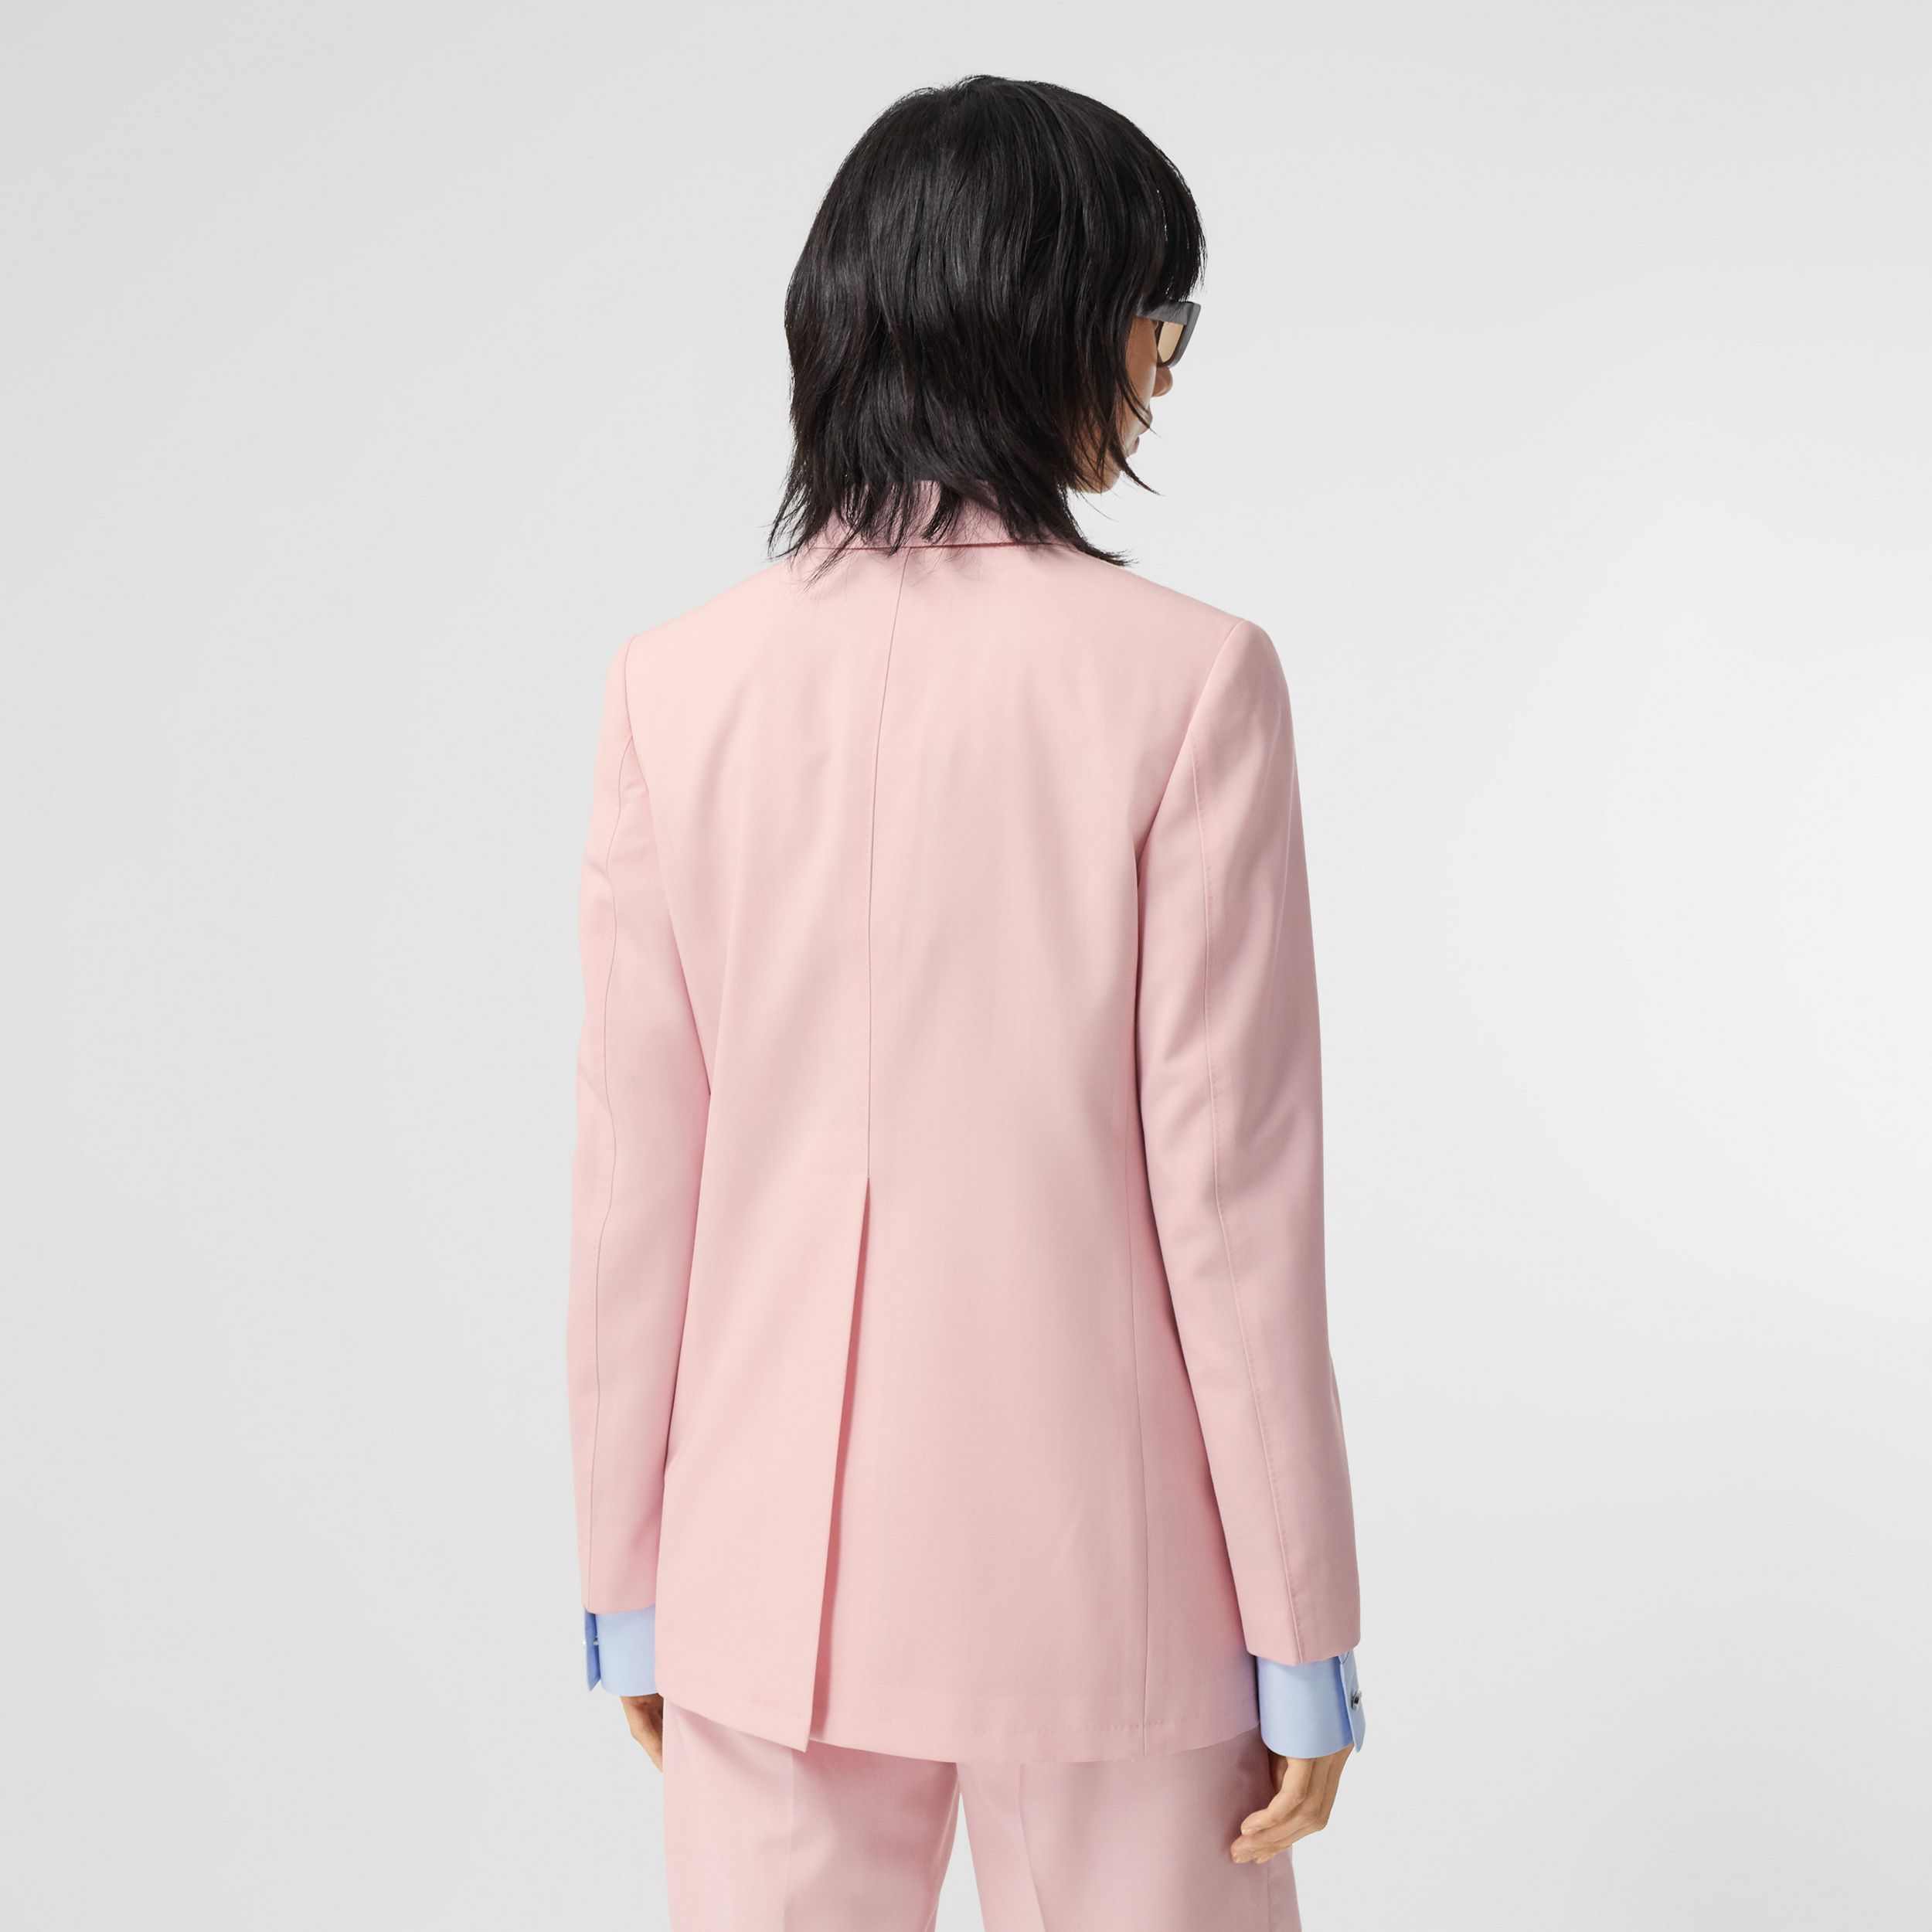 Tumbled Wool Double-breasted Blazer in Soft Pink | Burberry - 3